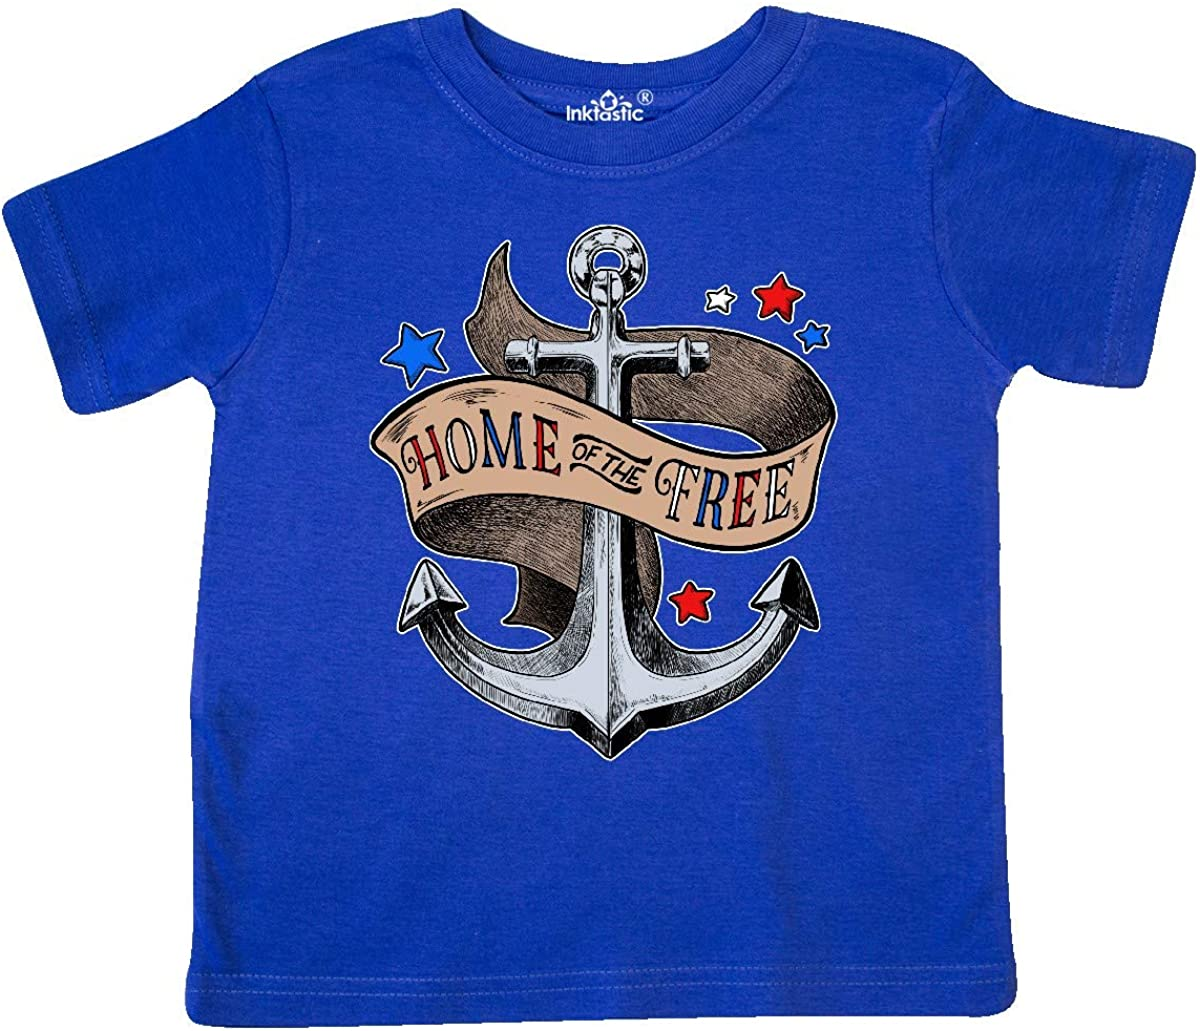 inktastic Home of The Free Anchor Illustration Toddler T-Shirt